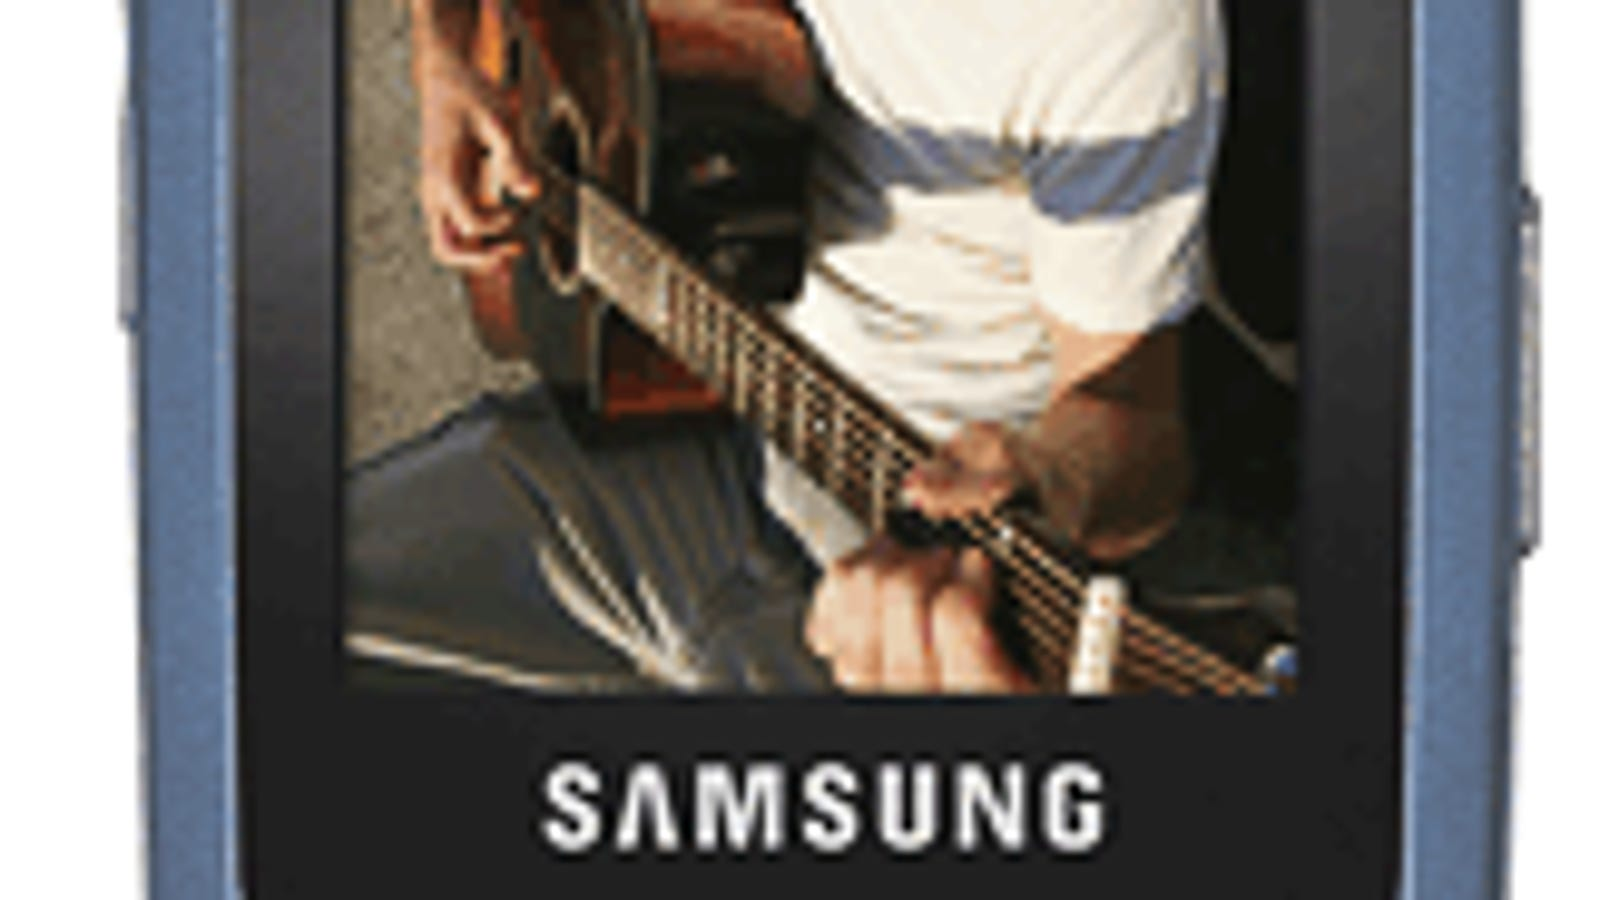 Samsung A737 Live Video Slider Available